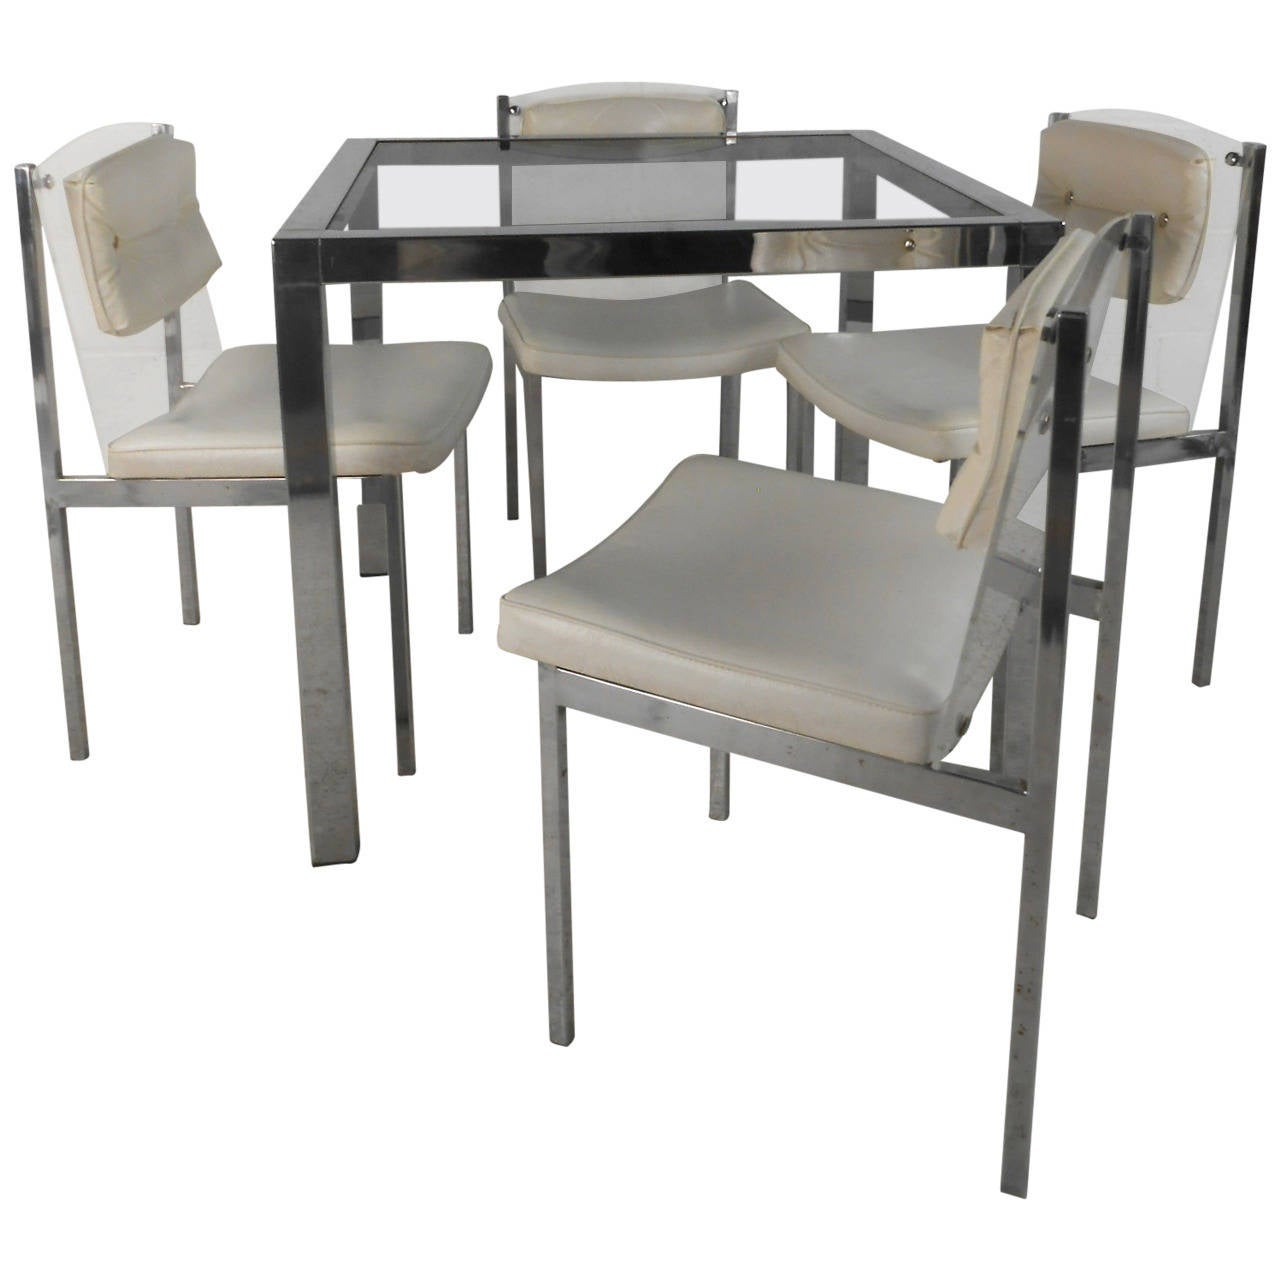 Modern Table And Chairs Mid Century Modern Chrome Glass And Lucite Dining Set Table With Chairs